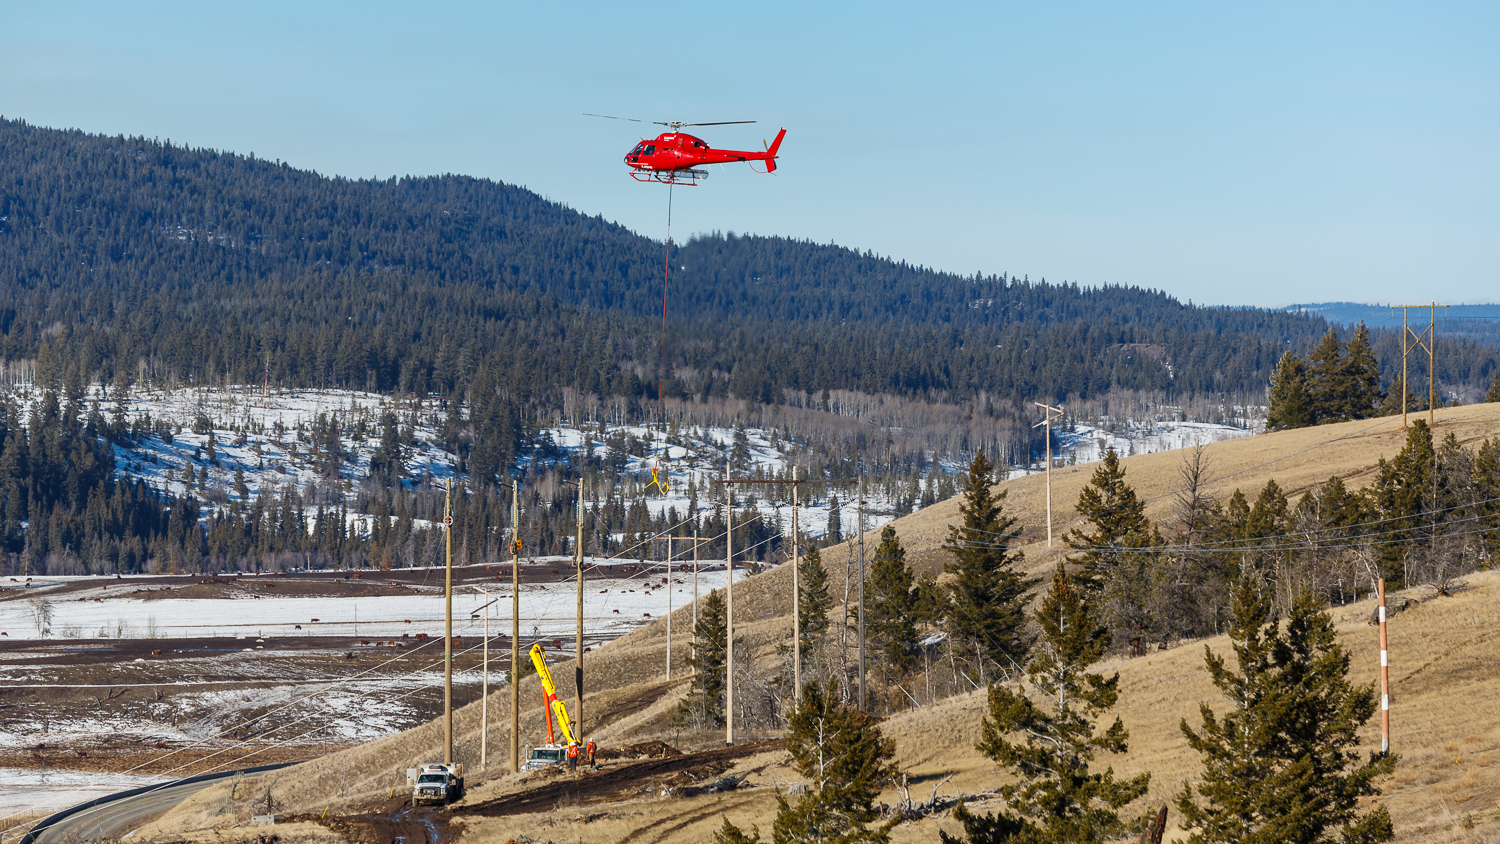 After re-fueling, the helicopter picked up a 'needle' that was needed to thread the line through the middle section of each tower.